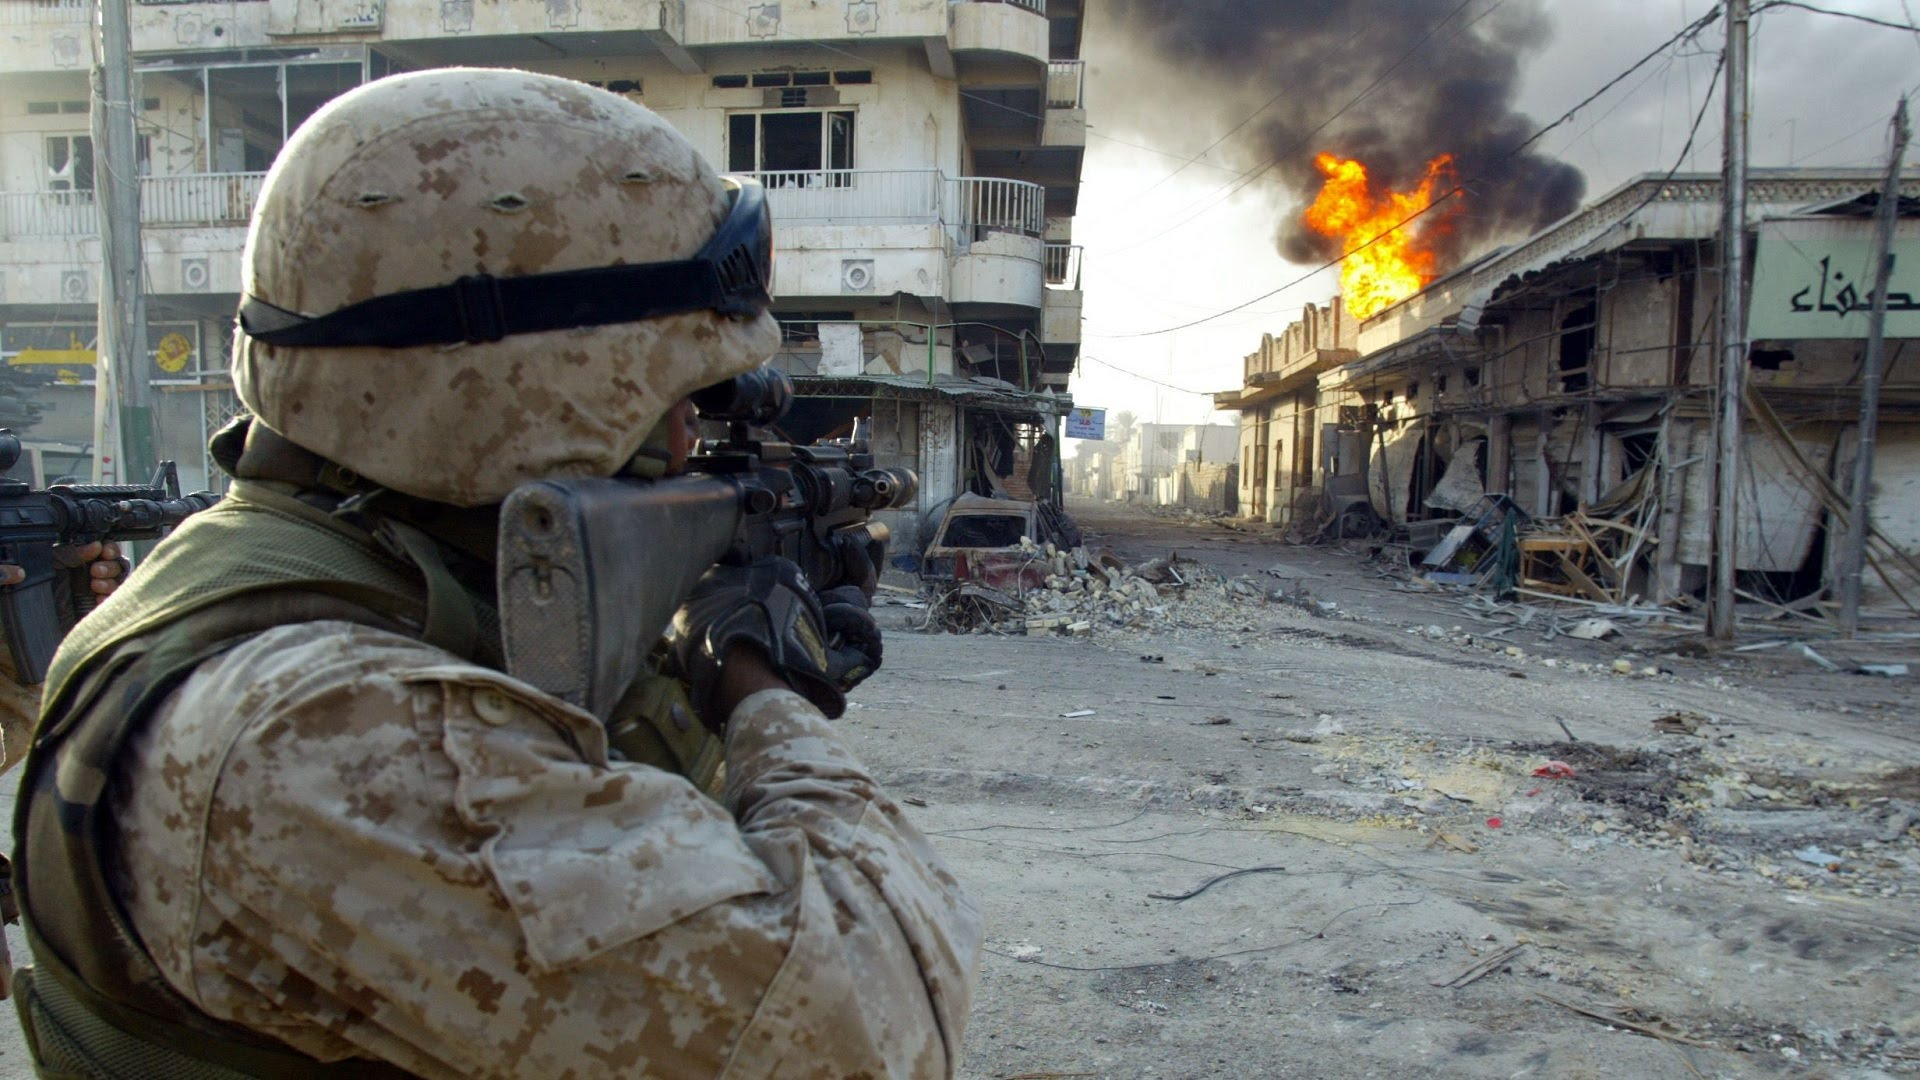 War in Iraq Essays: Great Way to Express the Bad Effects of War